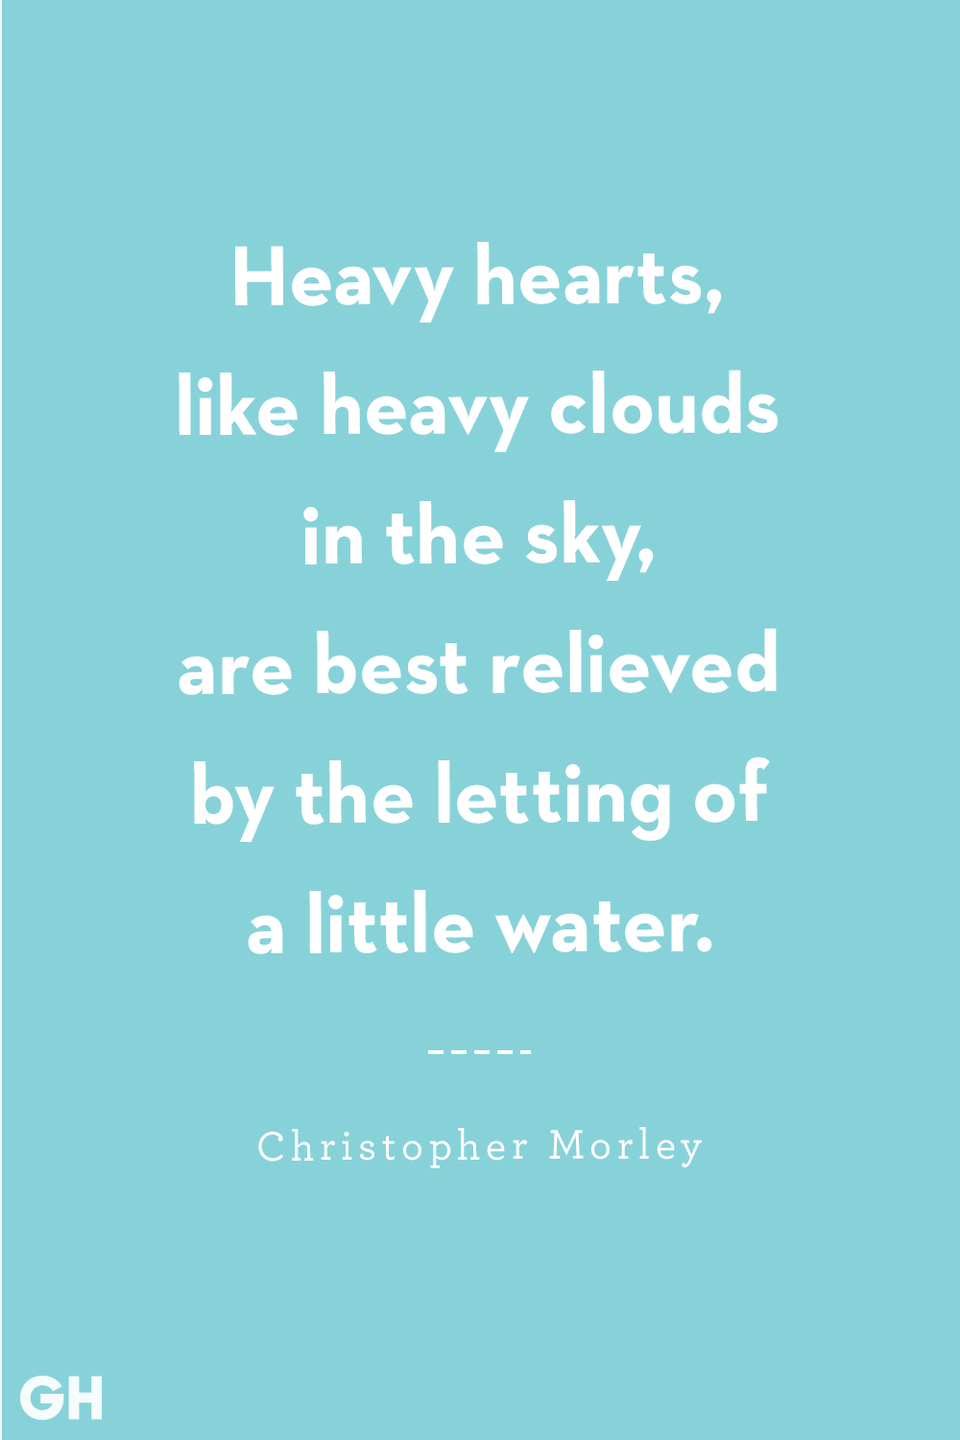 <p>Heavy hearts, like heavy clouds in the sky, are best relieved by the letting of a little water.</p>